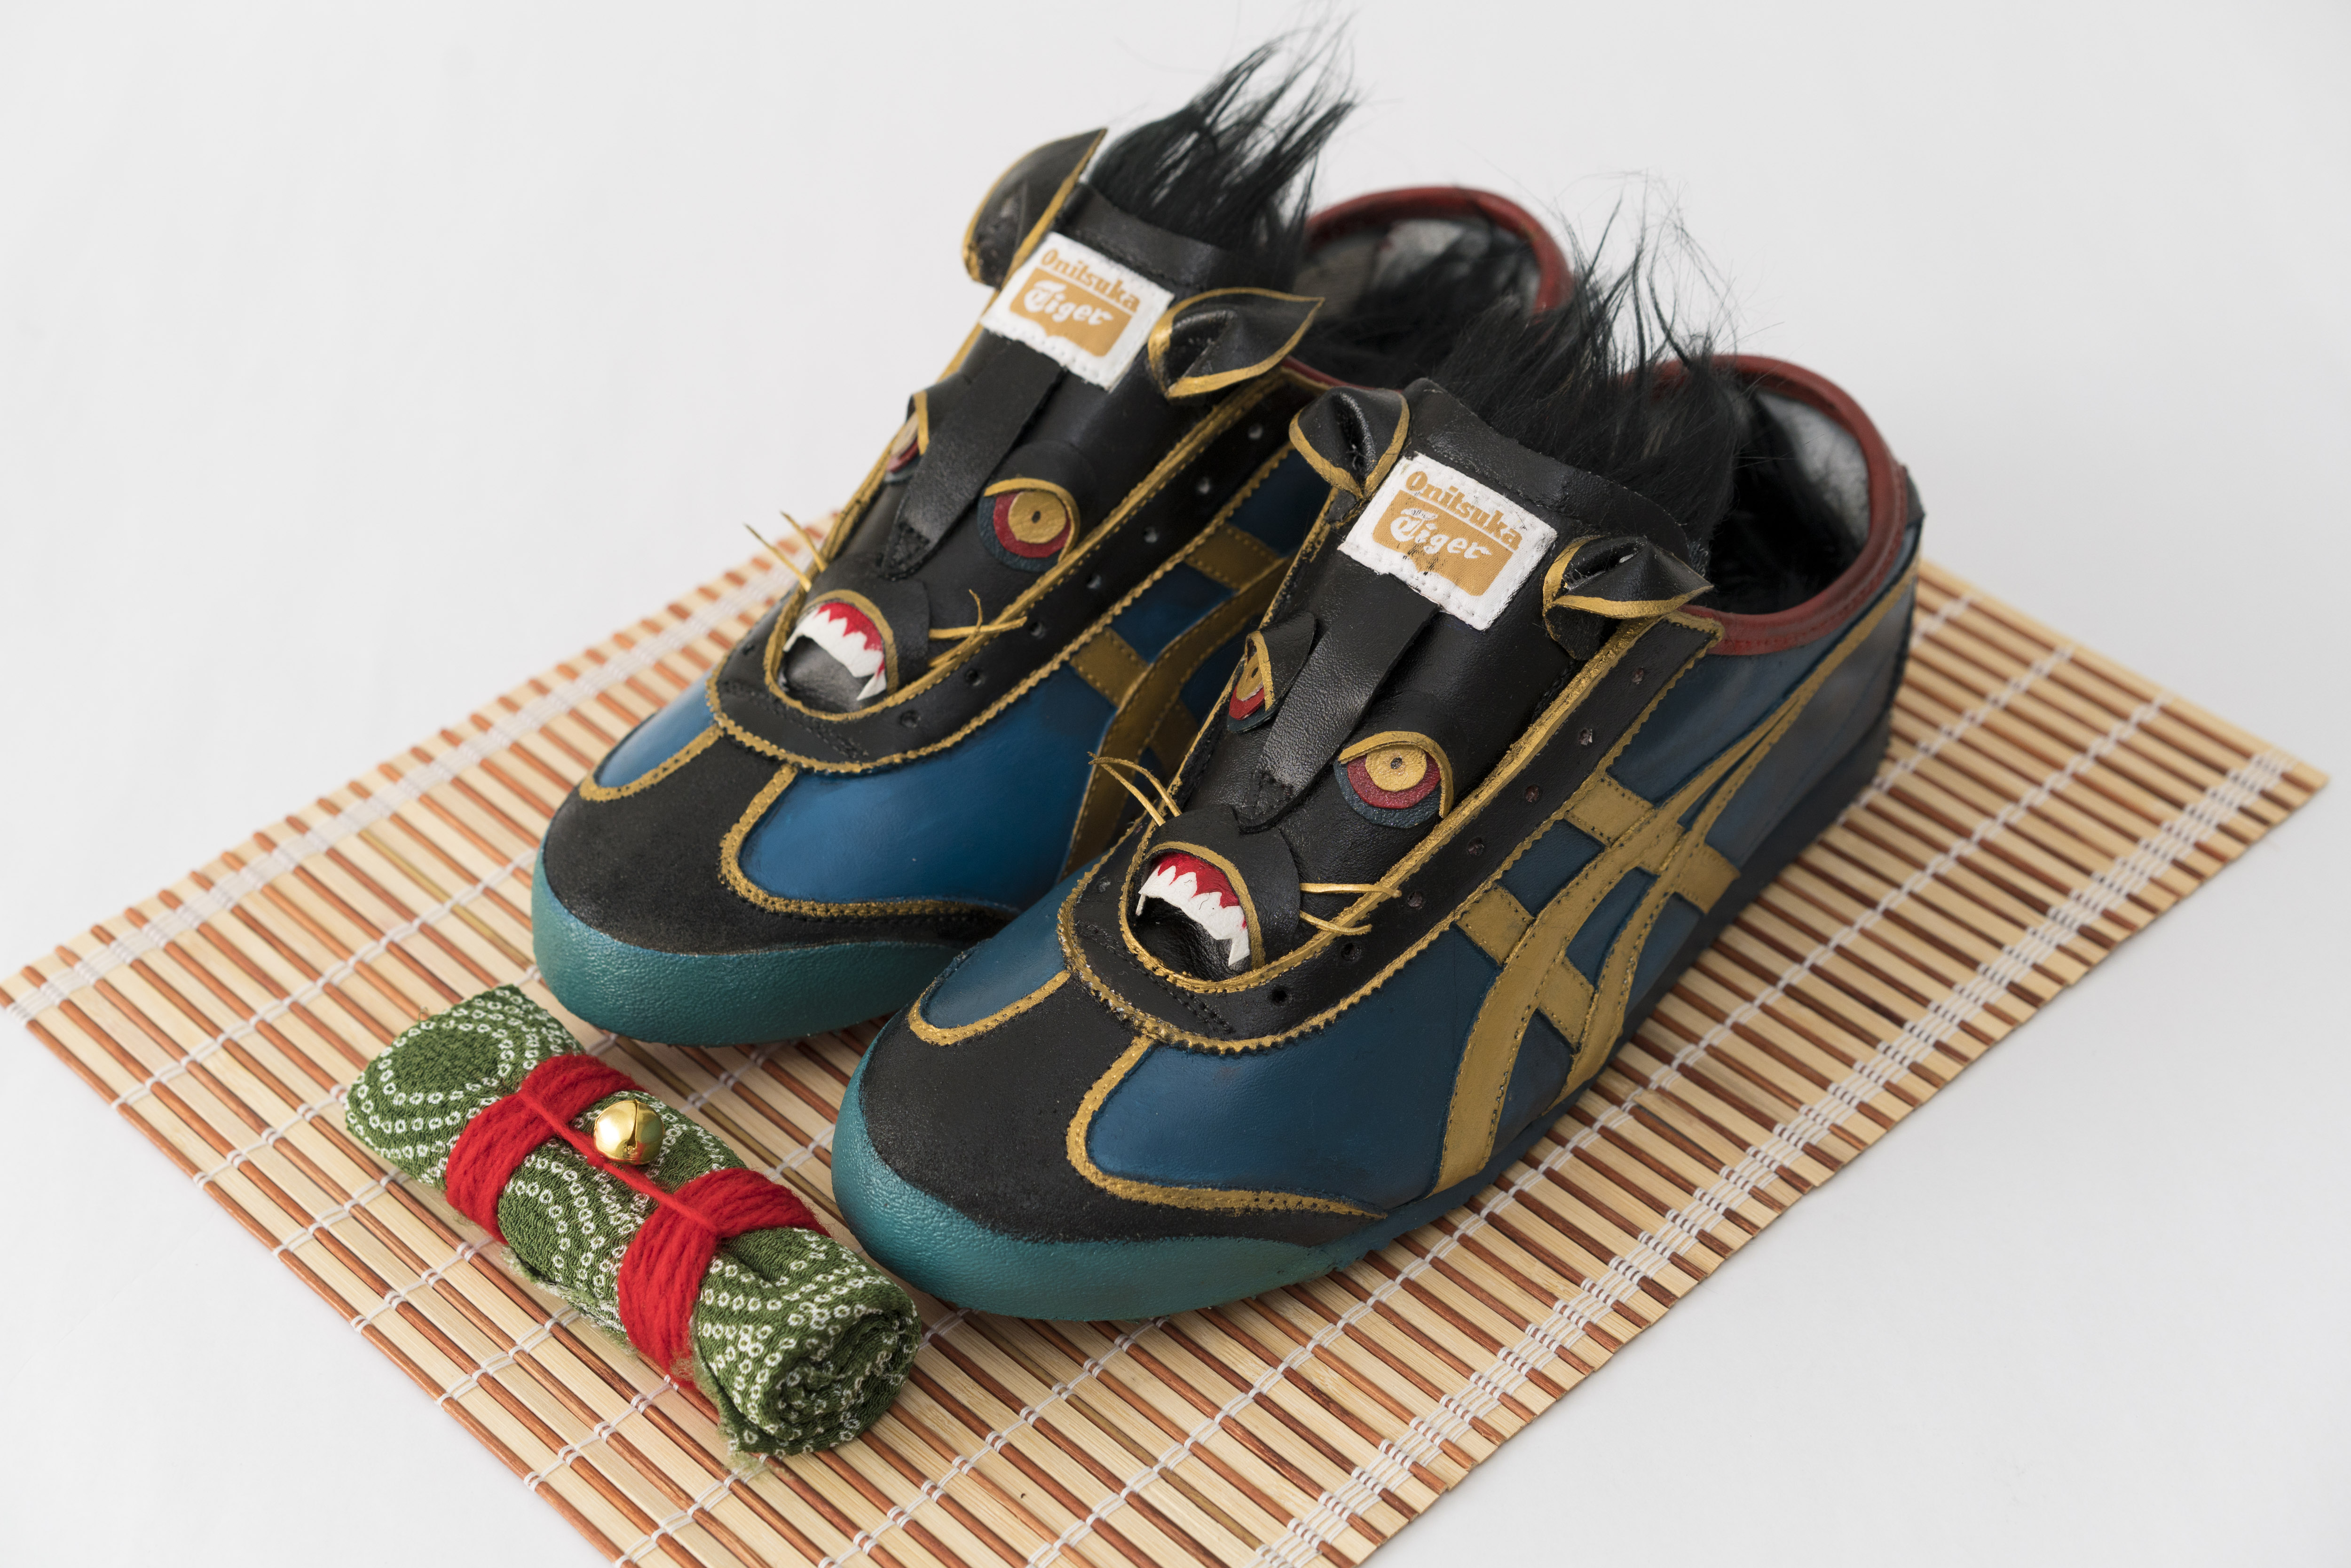 onitsuka tiger mexico 66 black friday 19 march opiniones